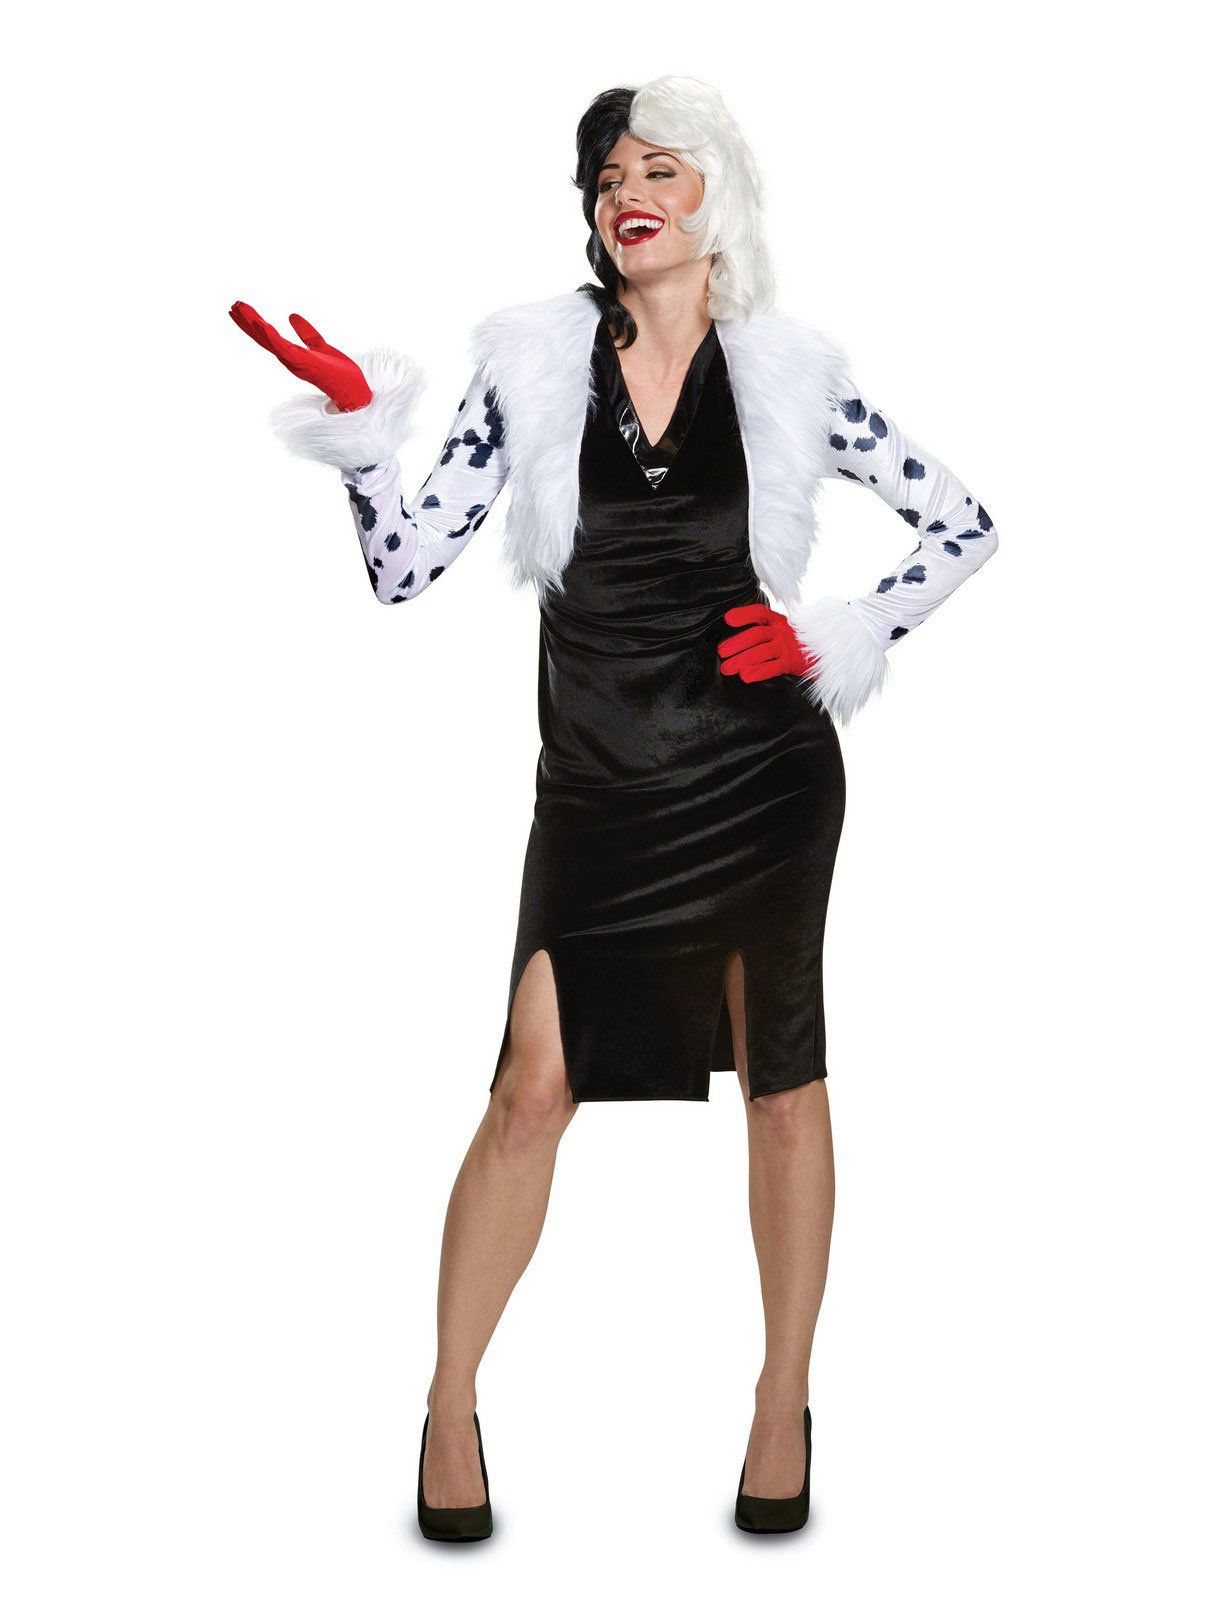 Disney Villains Deluxe Cruella De Vil Adult Costume - Womens